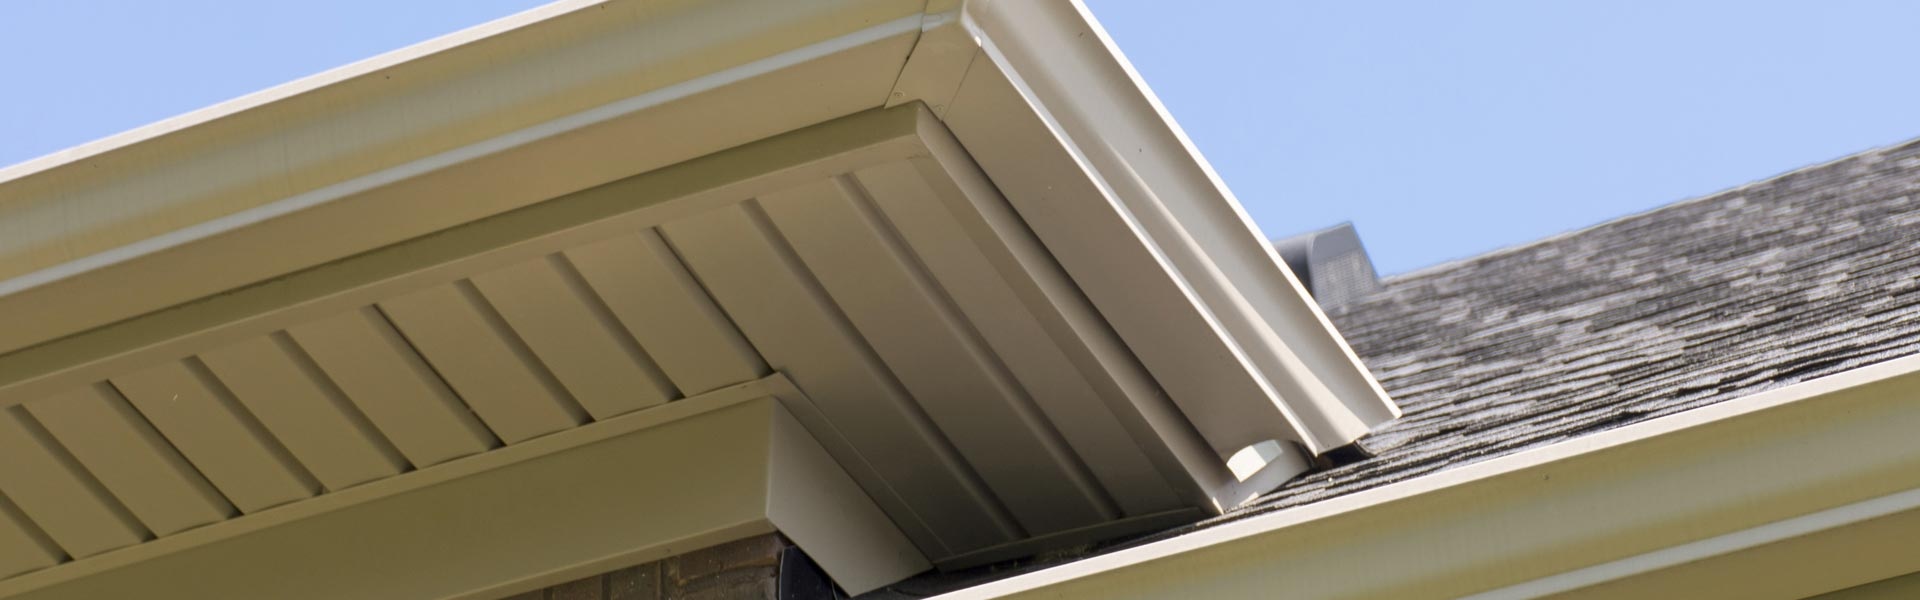 All American Roofing and Siding Images